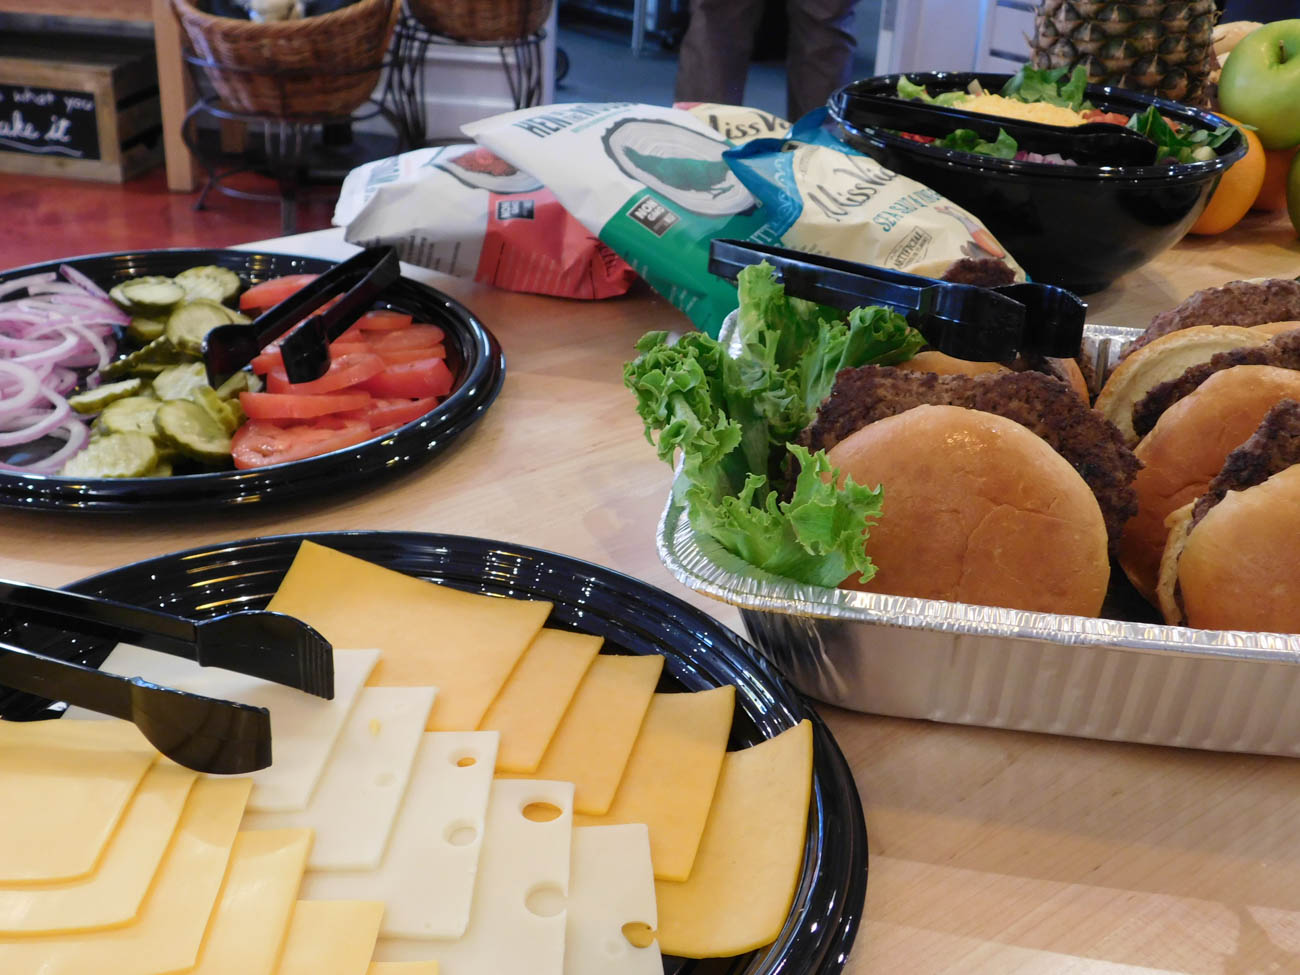 <p>RiverCenter Catering started in early 2019. They can provide anything from a burger bar, to breakfast pastries, to fine dining, to boxed salads and sandwiches for your event, thanks to the diverse cuisine behind their three food venues. / Image courtesy of RiverCenter Entertainment // Published: 6.20.19</p>